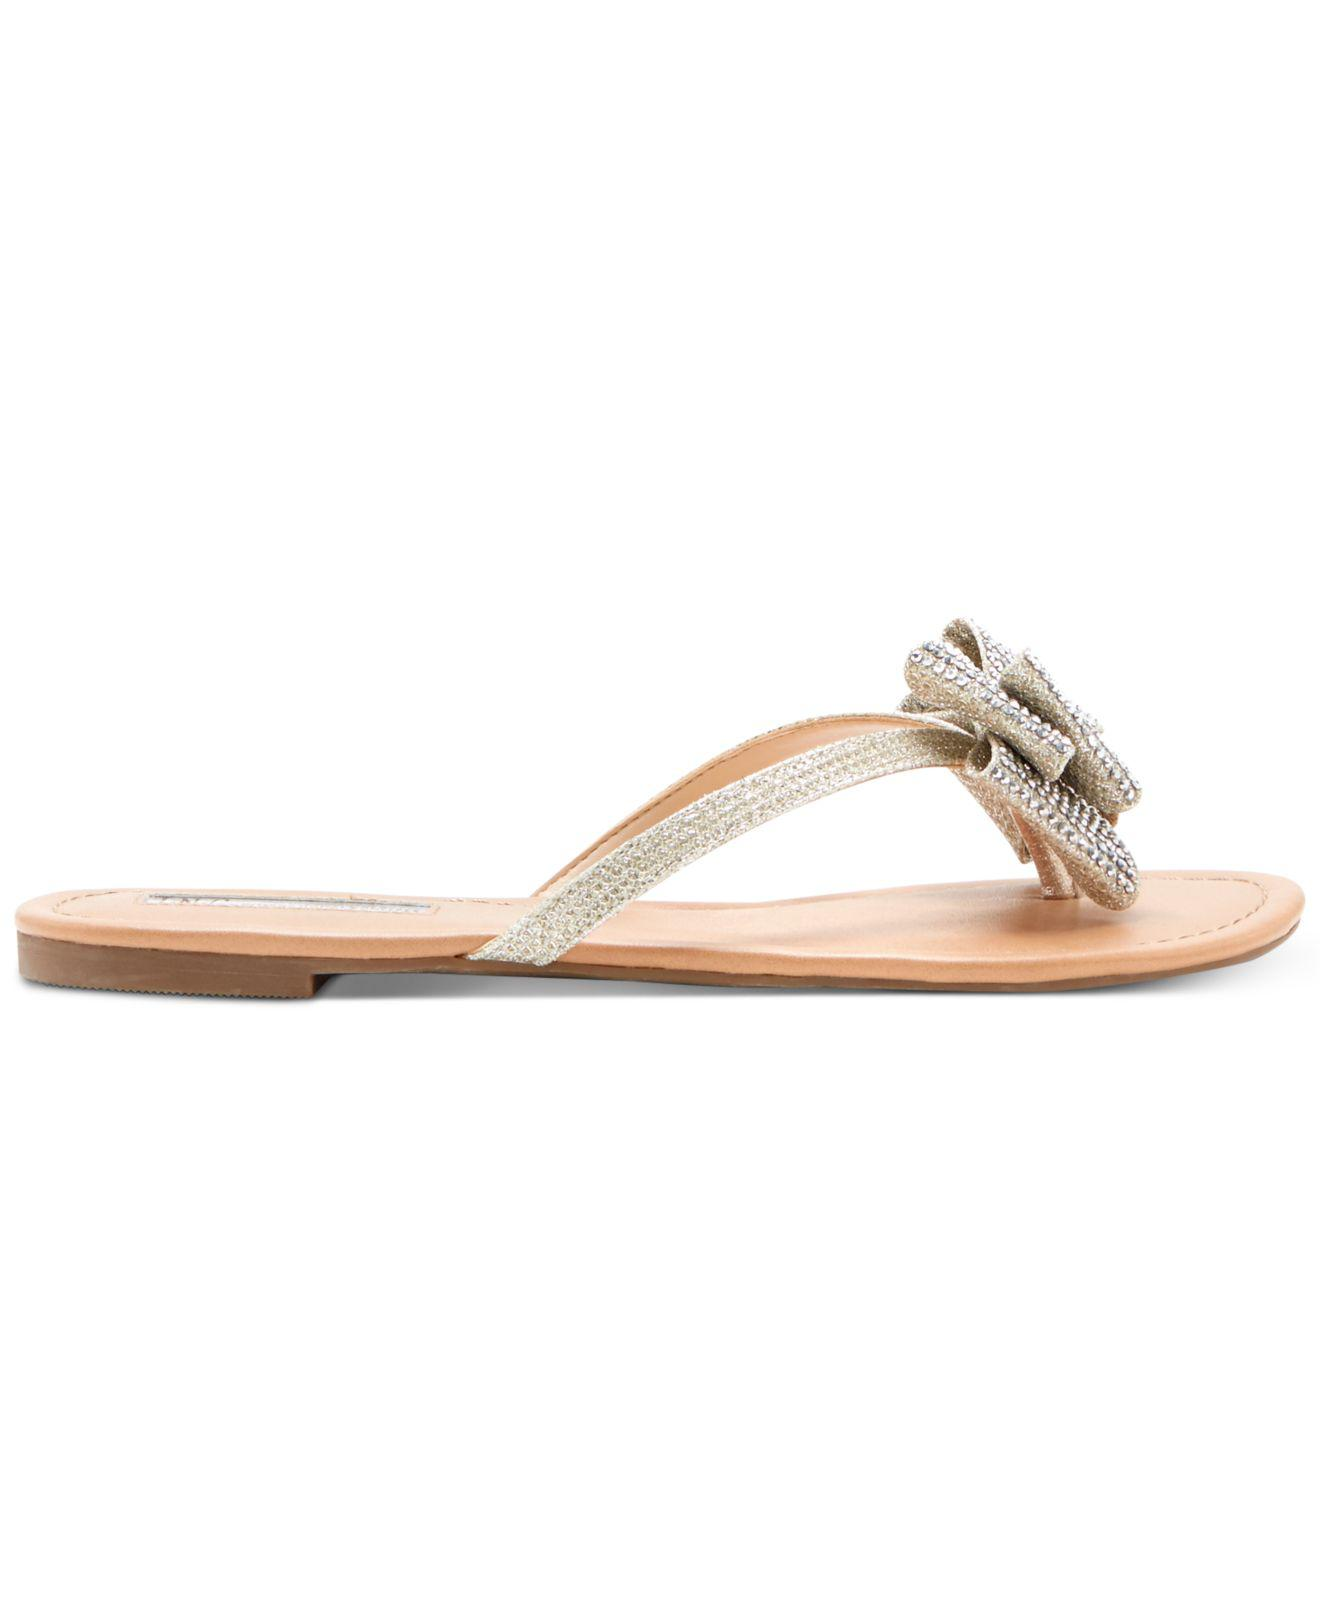 bdd54930389e6f INC International Concepts Women s Mabae Bow Flat Sandals - Save 16% - Lyst